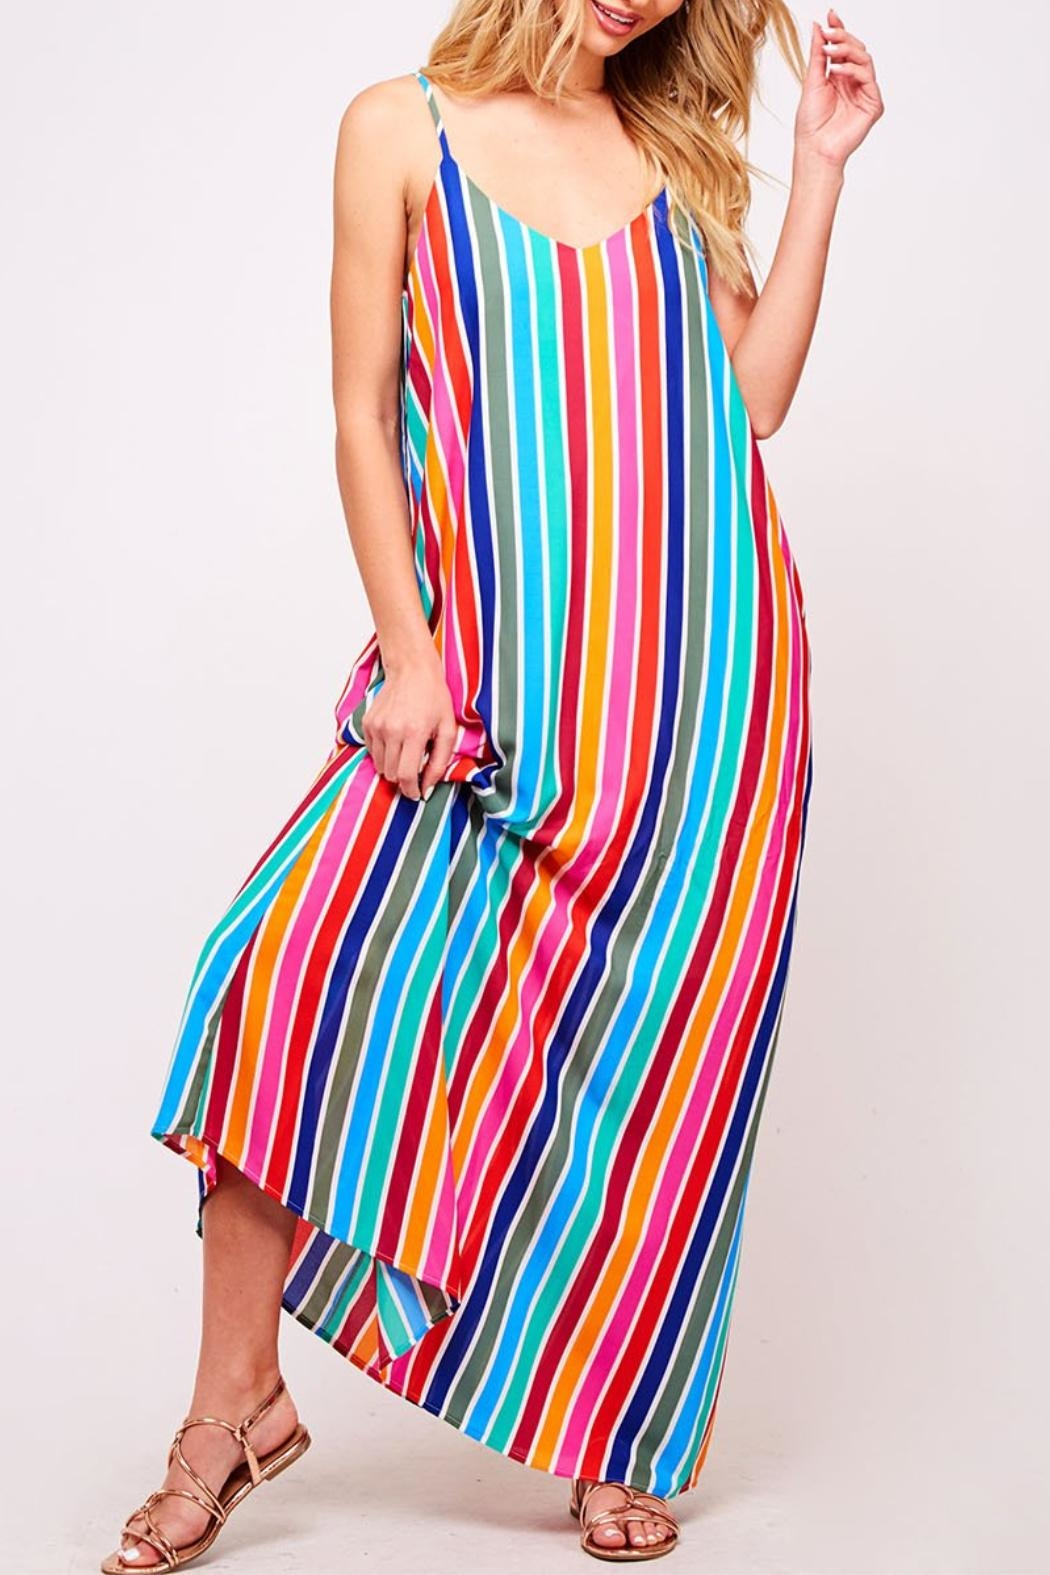 Image result for Colorful Maxi Dress